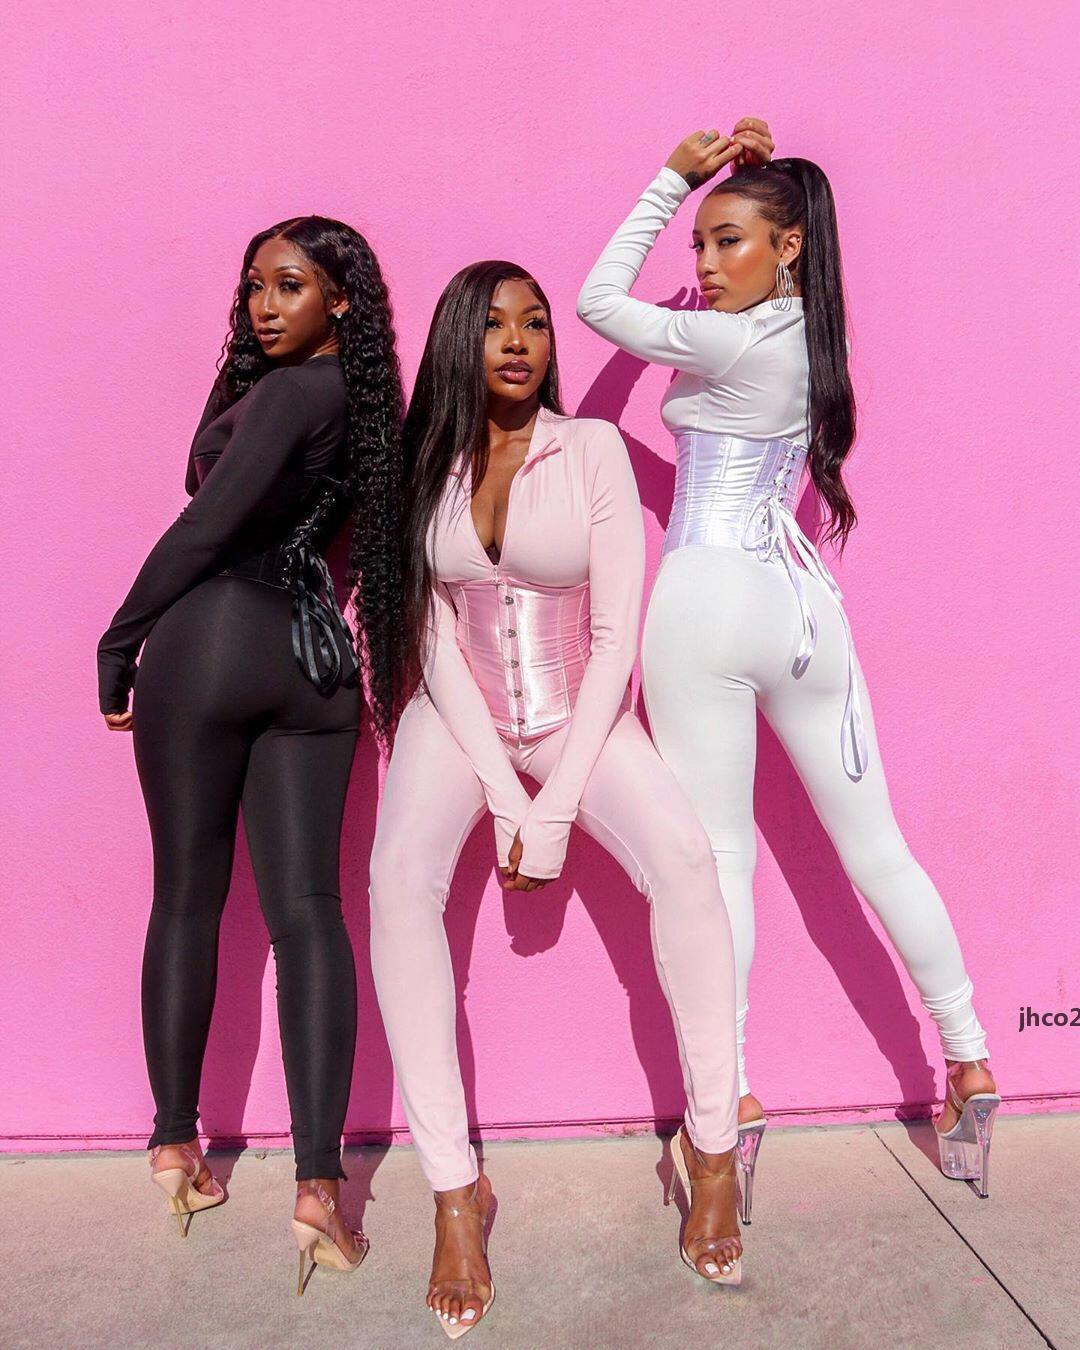 JH Women Solid Jumpsuit Corset 2 Pieces Set Long Sleeve Zipper Bodycon Sexy Streetwear Matching Outfit Clothing Tracksuits